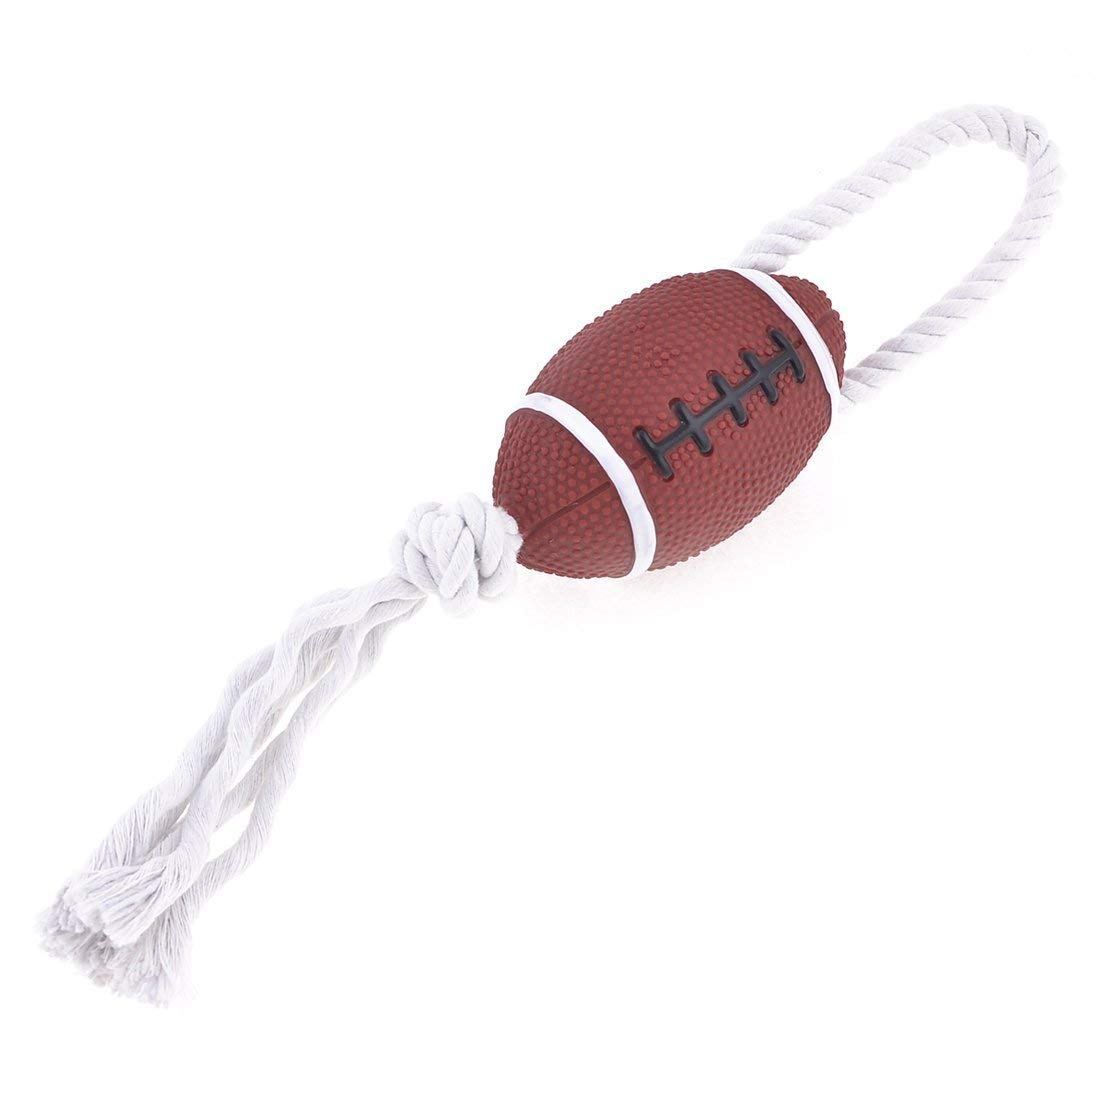 1Pc Pet Puppy Knot Rope Rugby Ball Chew Tug Squeaky Toy, White